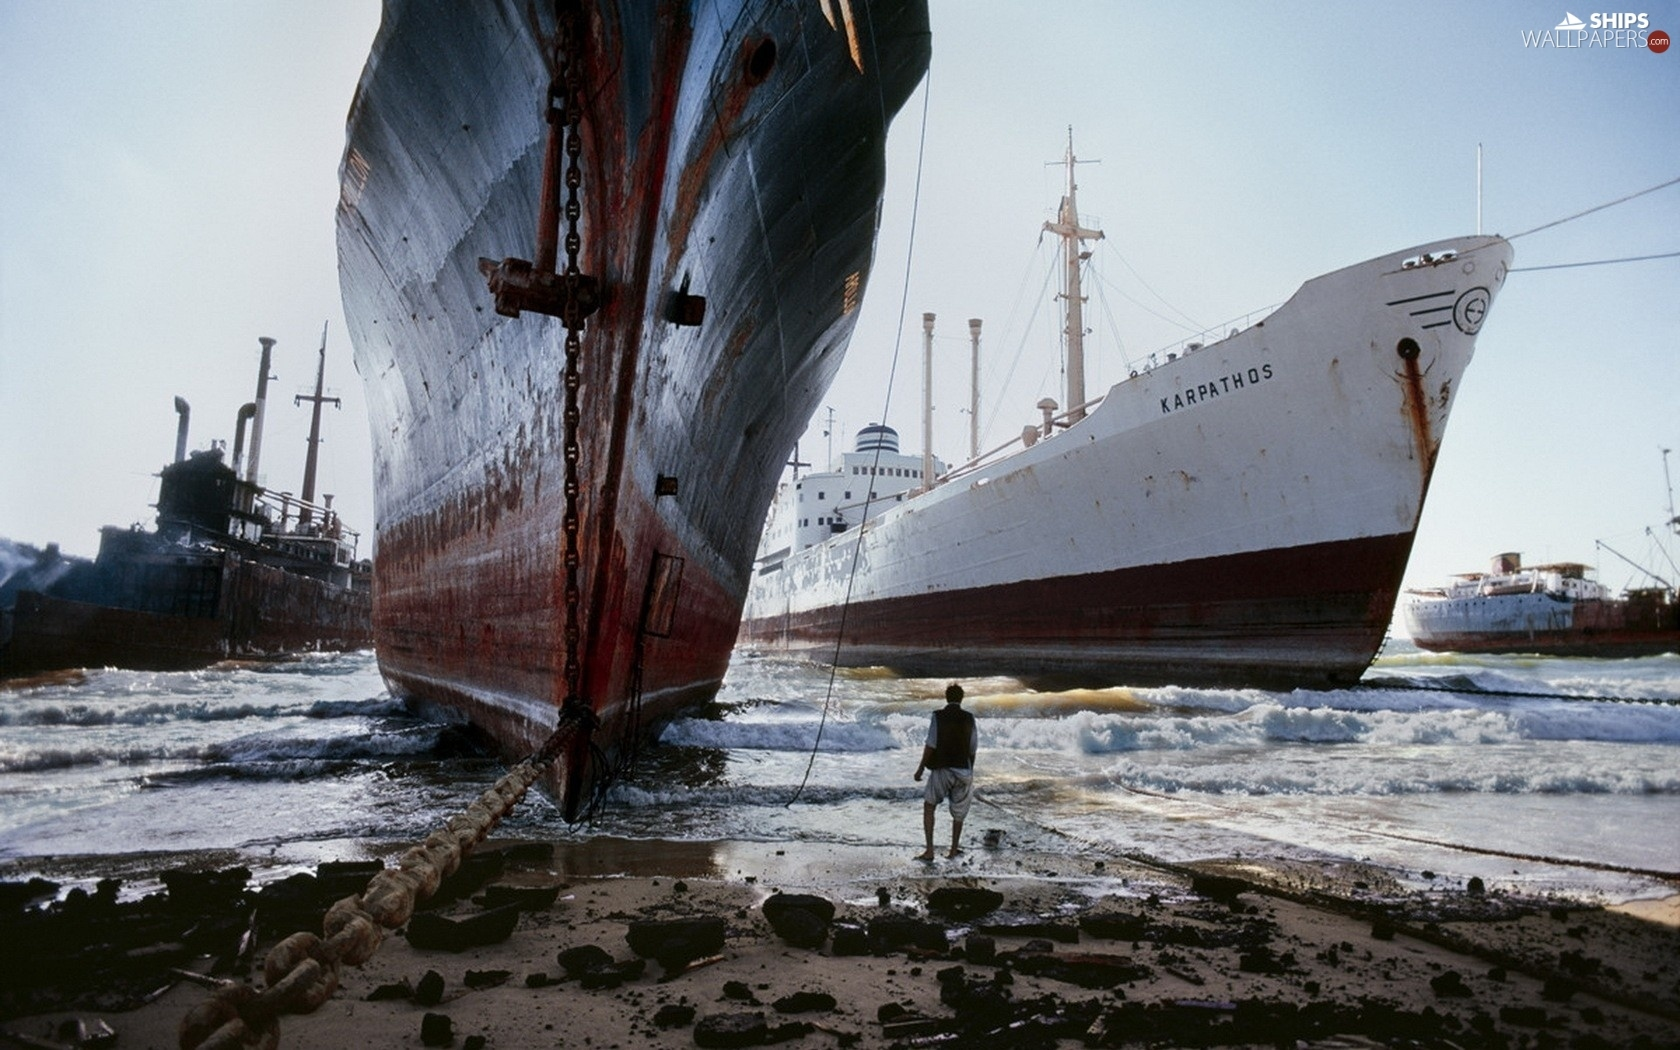 Beaches, vessels, scrapping